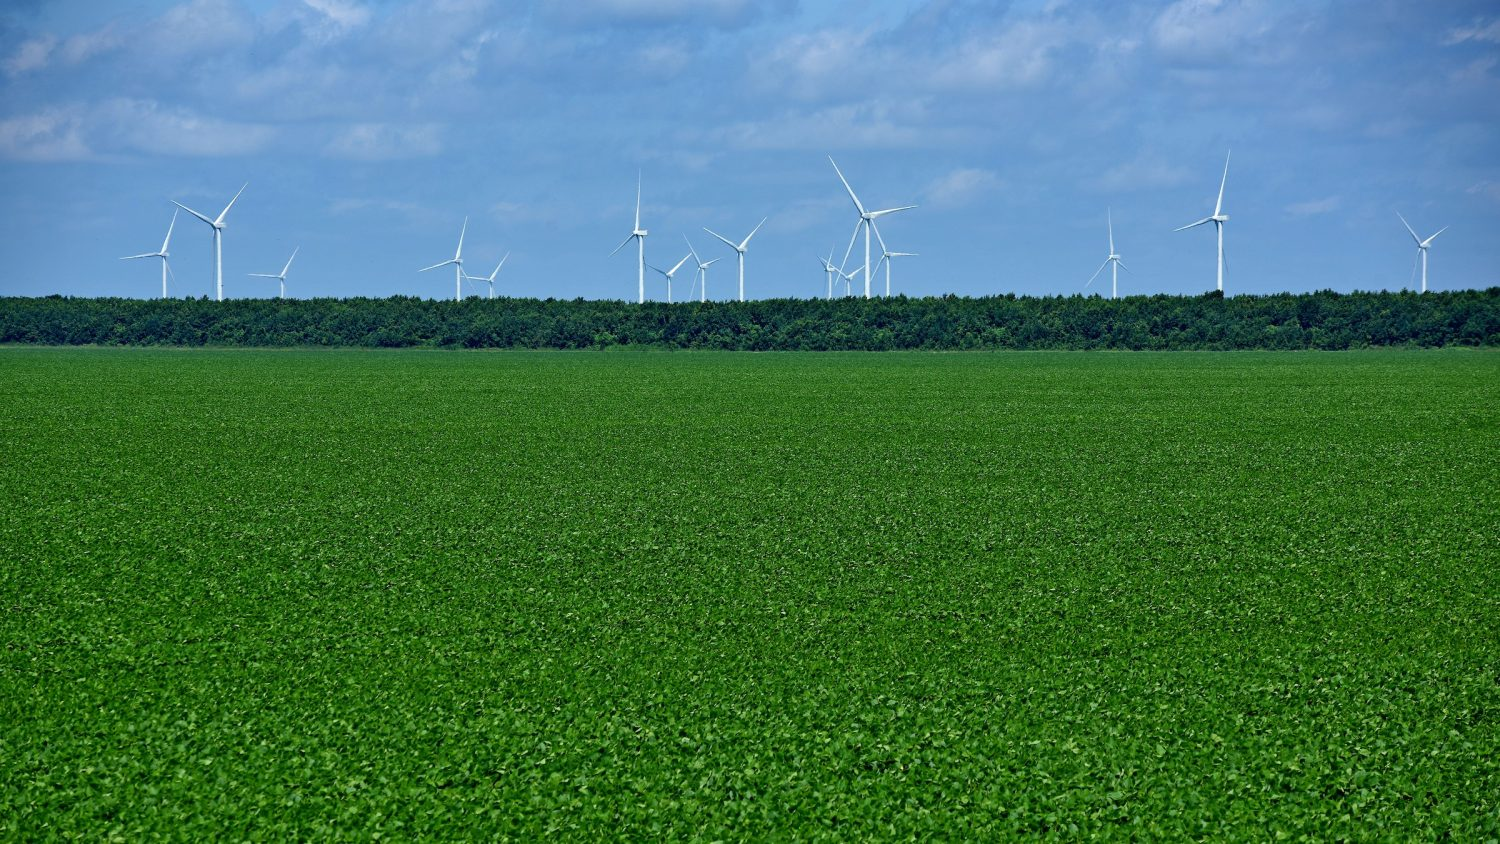 Energy-producing windmills rise up behind soy bean fields, harnessing electrical power from Pasquotank County wind.